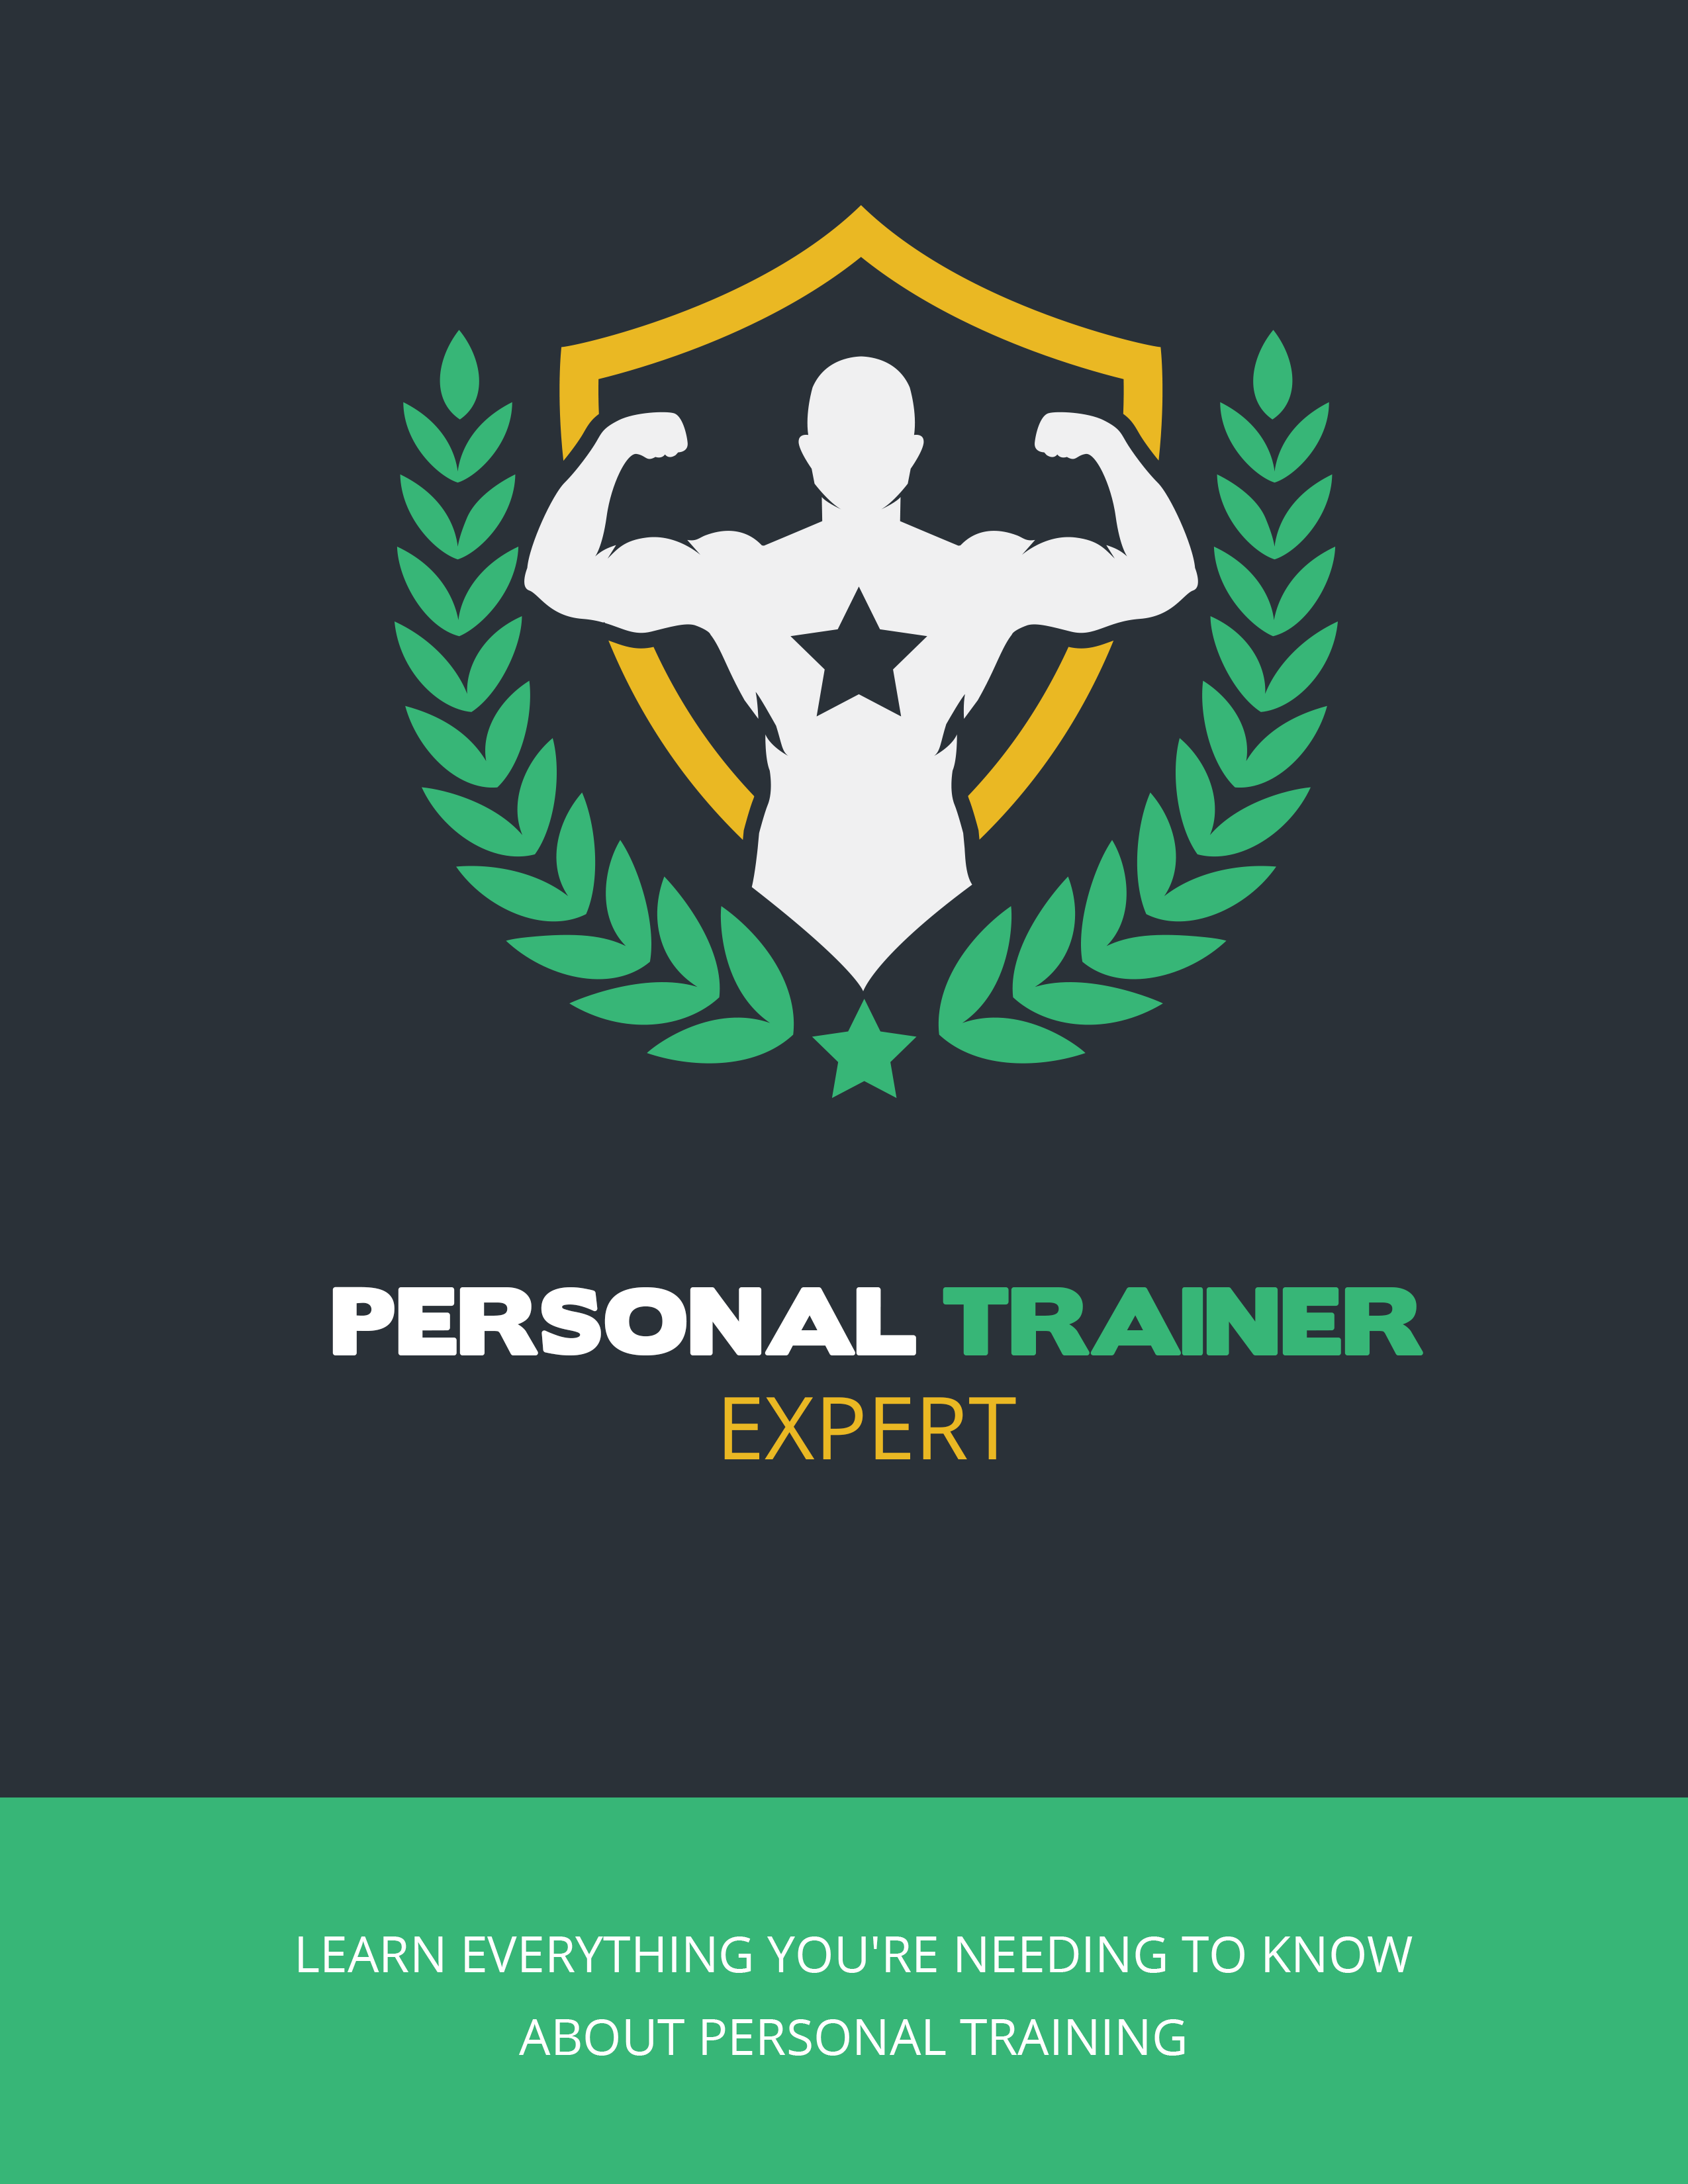 Personal Trainer Expert (Learn Everything You're Needing To Know About Personal Training) Ebook's Ebook Image